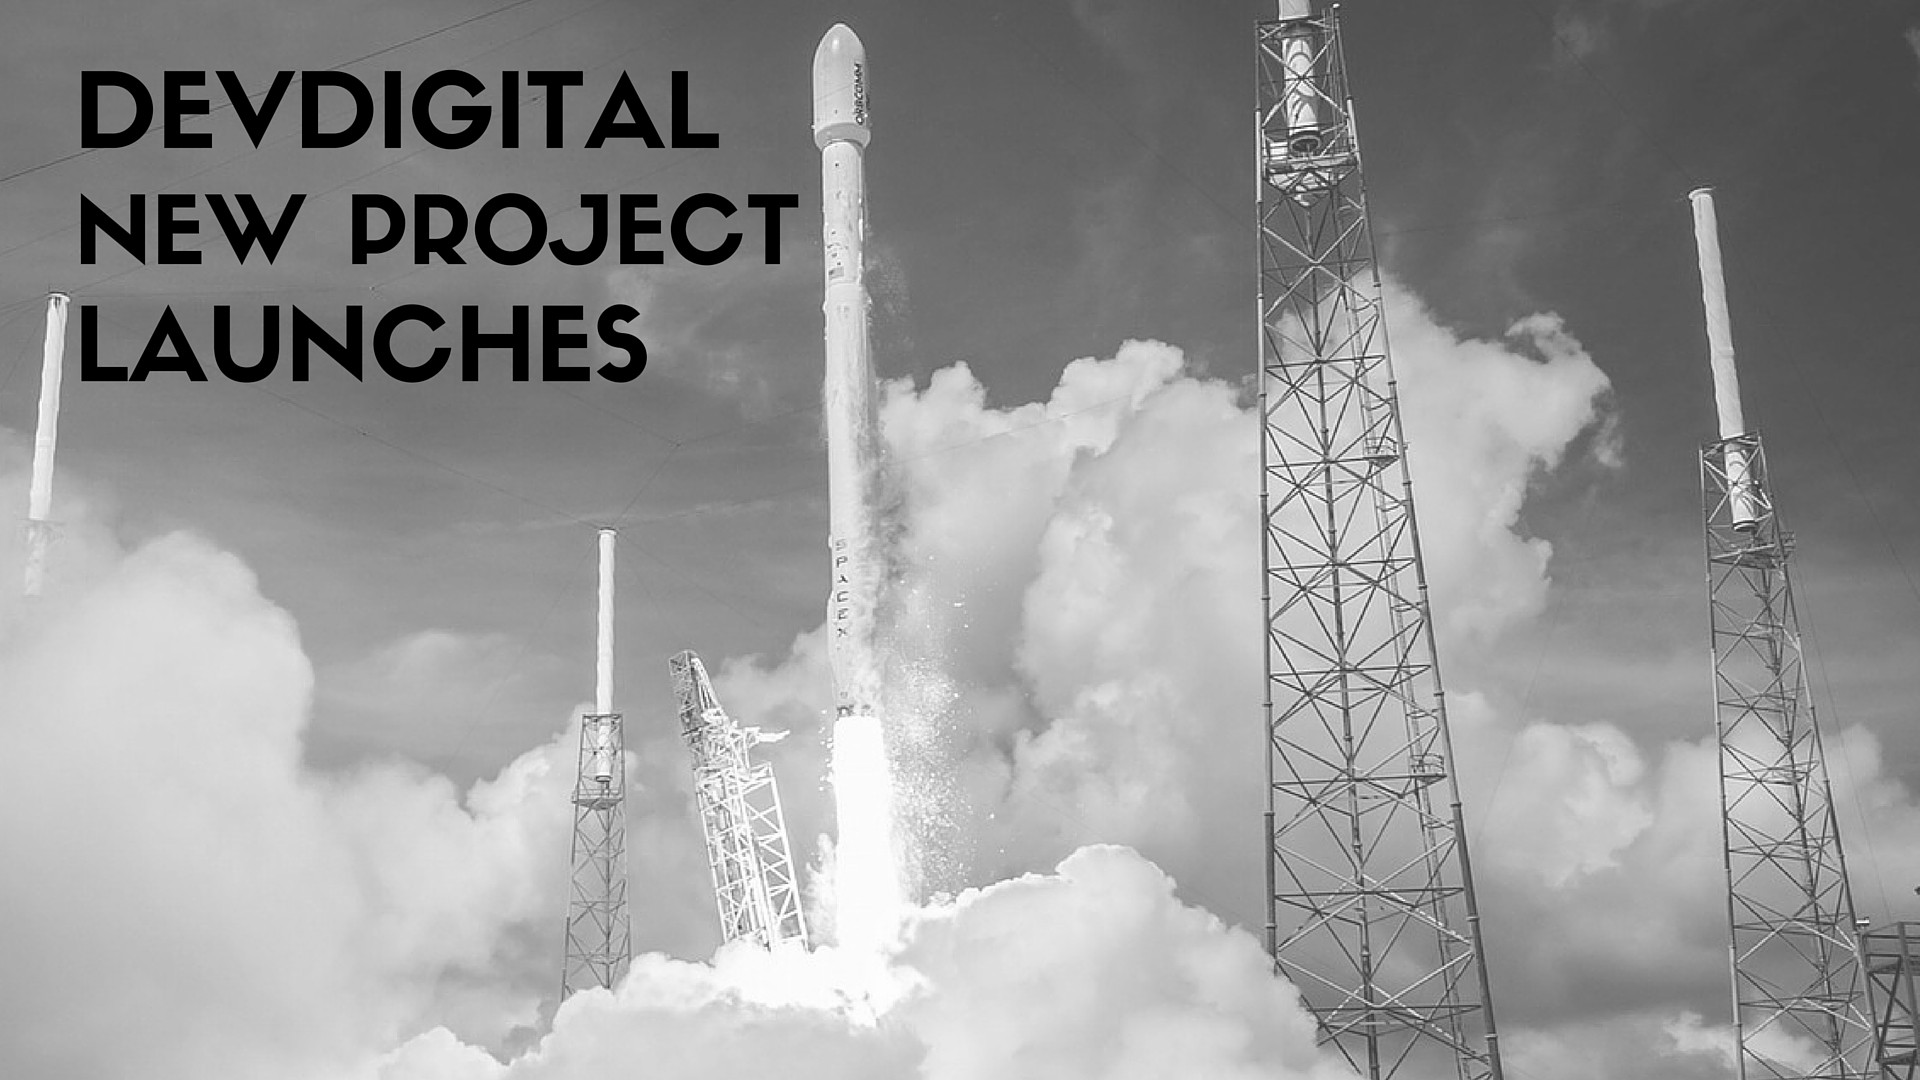 DevDigital New Project Launches